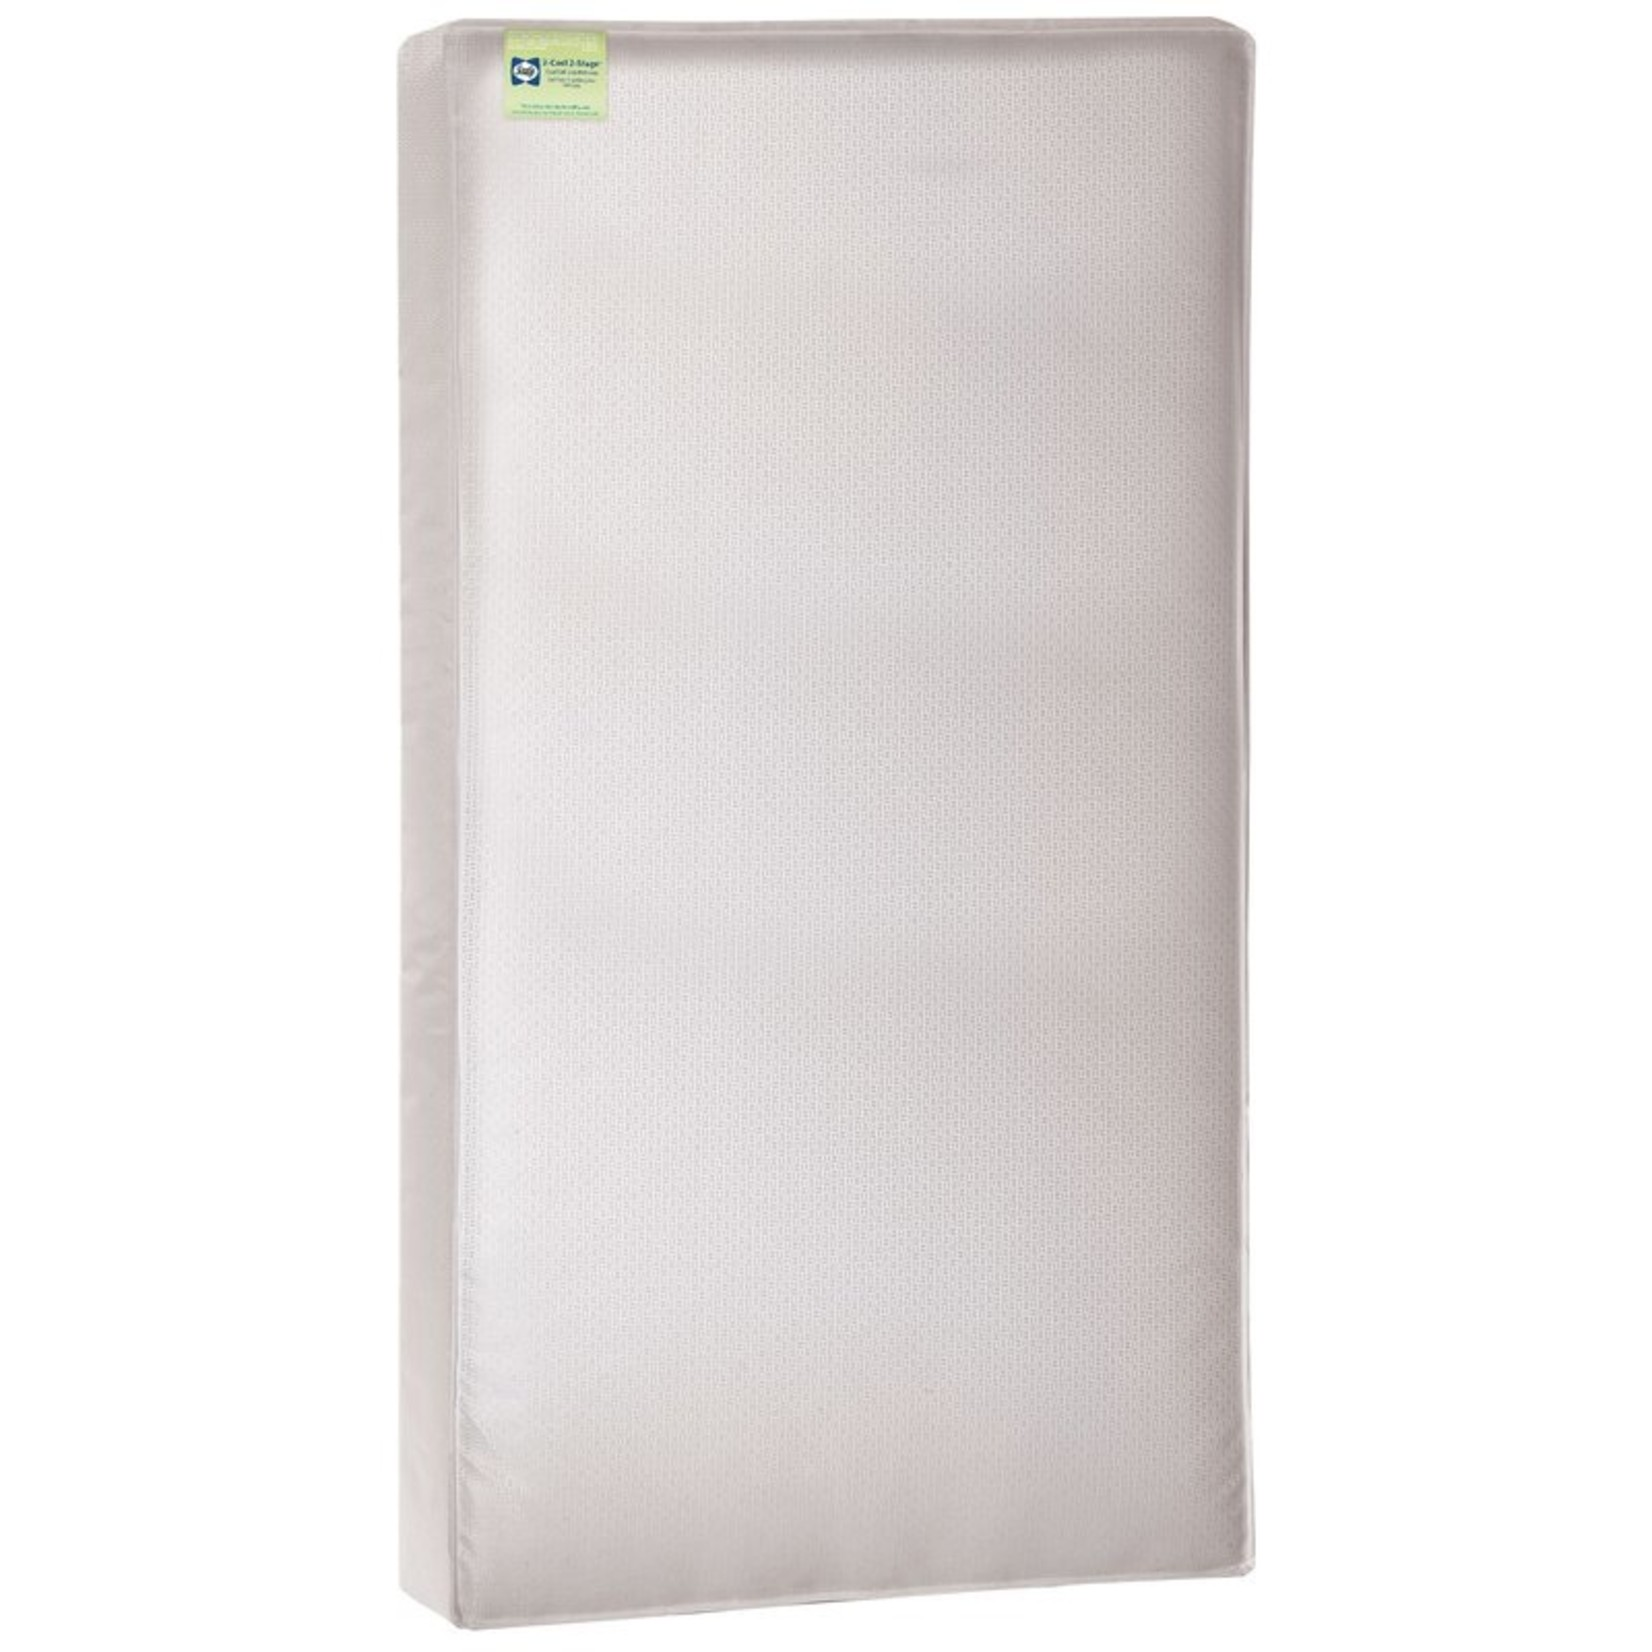 *Sealy Baby Nature Couture Soybean Serenity Waterproof Standard Toddler & Crib Mattress - Final Sale